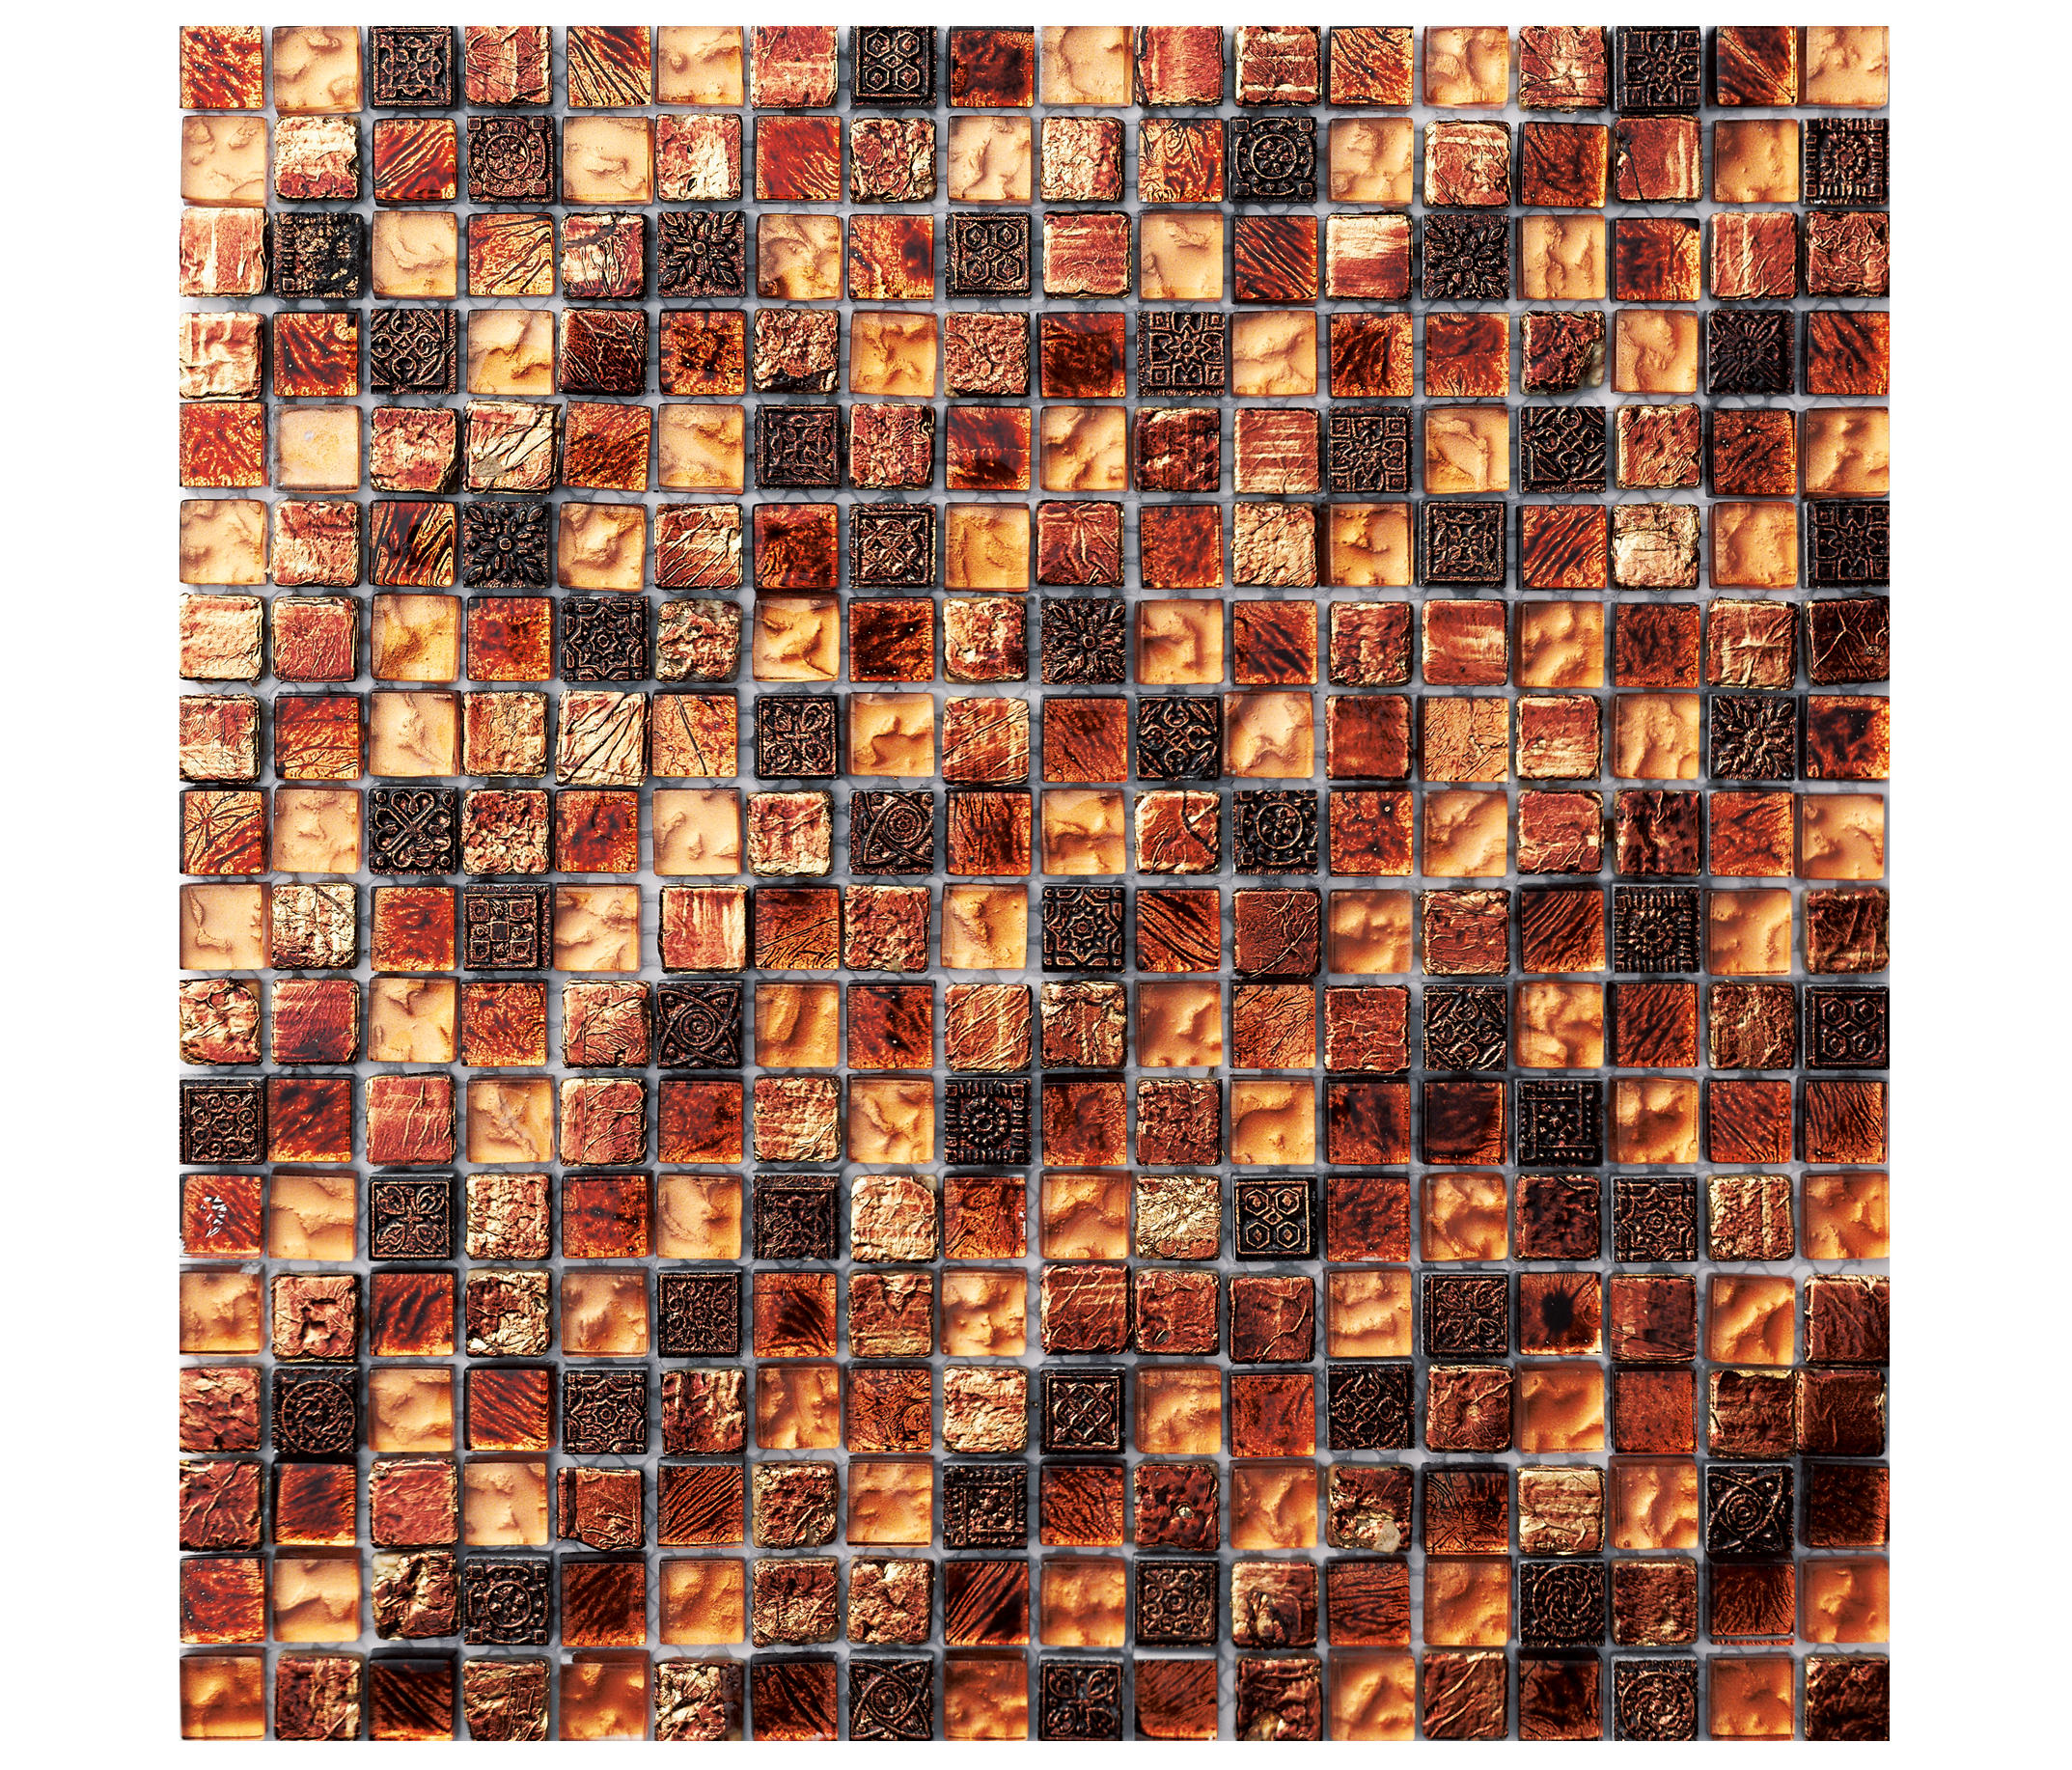 venezia hermes wall mosaics from dune cer mica